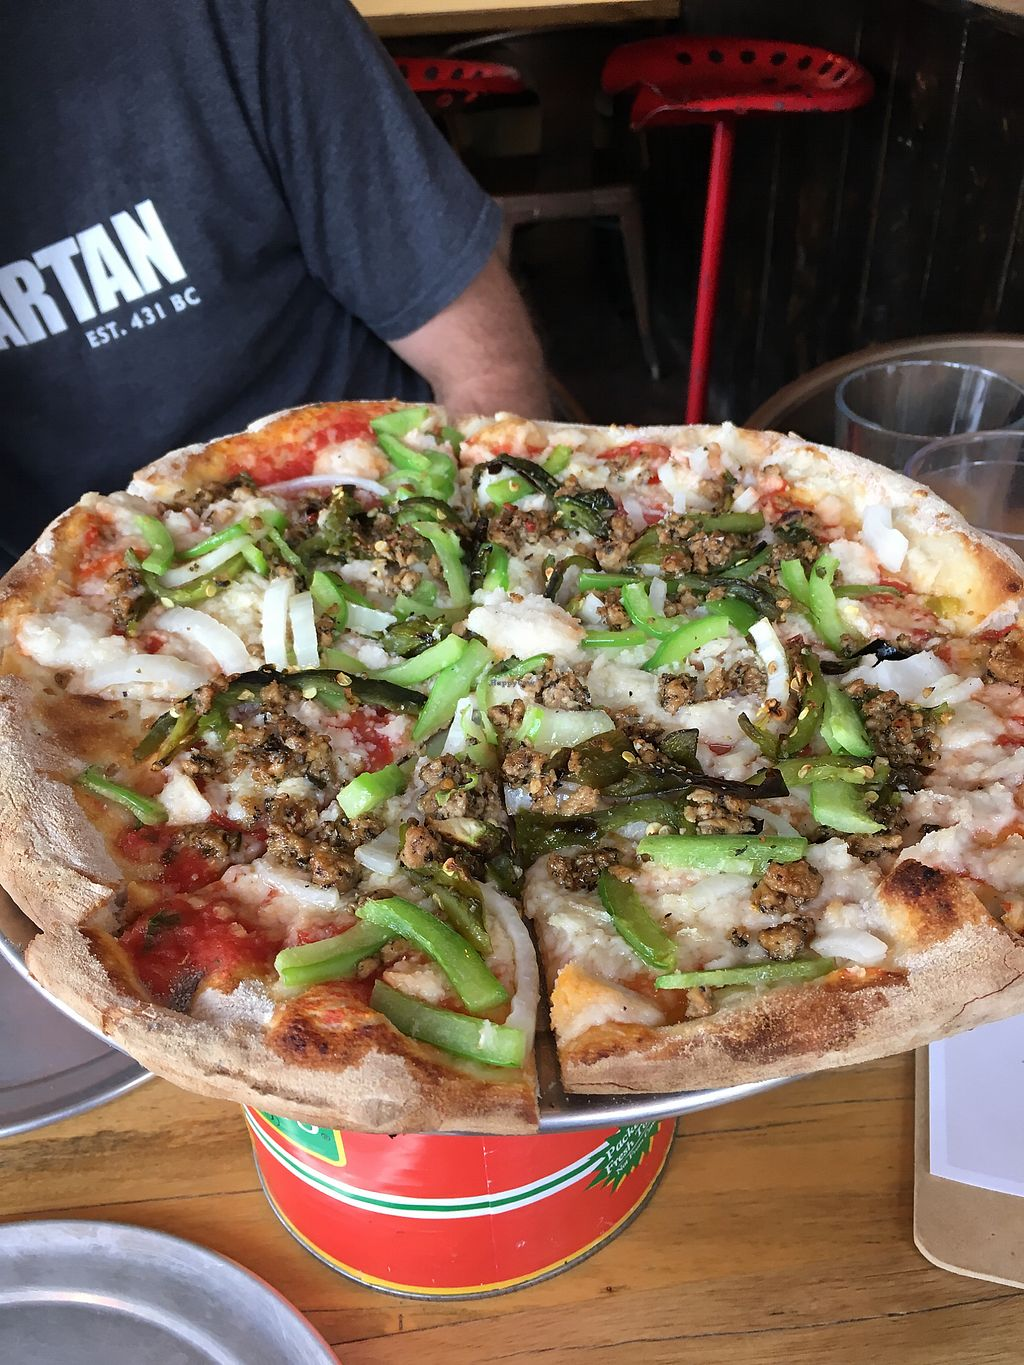 "Photo of Piante Pizzeria  by <a href=""/members/profile/kberhost"">kberhost</a> <br/>Sooooo good!  <br/> July 24, 2017  - <a href='/contact/abuse/image/84461/284407'>Report</a>"